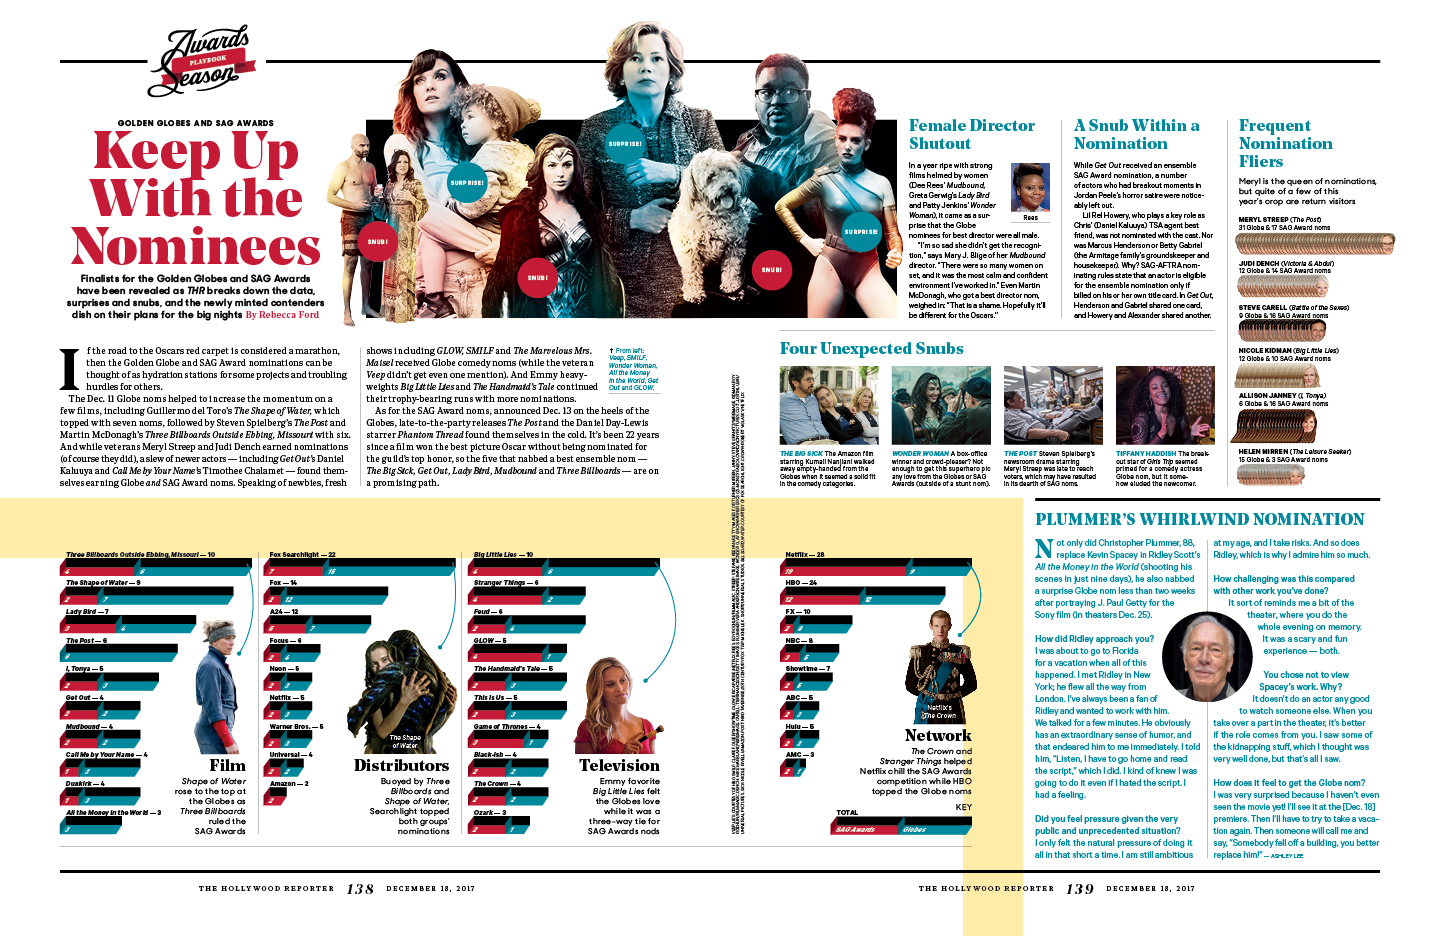 Keep Up With the Nominees / The Hollywood Reporter / 12.18.17 / kelsey stefanson / art direction + graphic design / yeskelsey.com